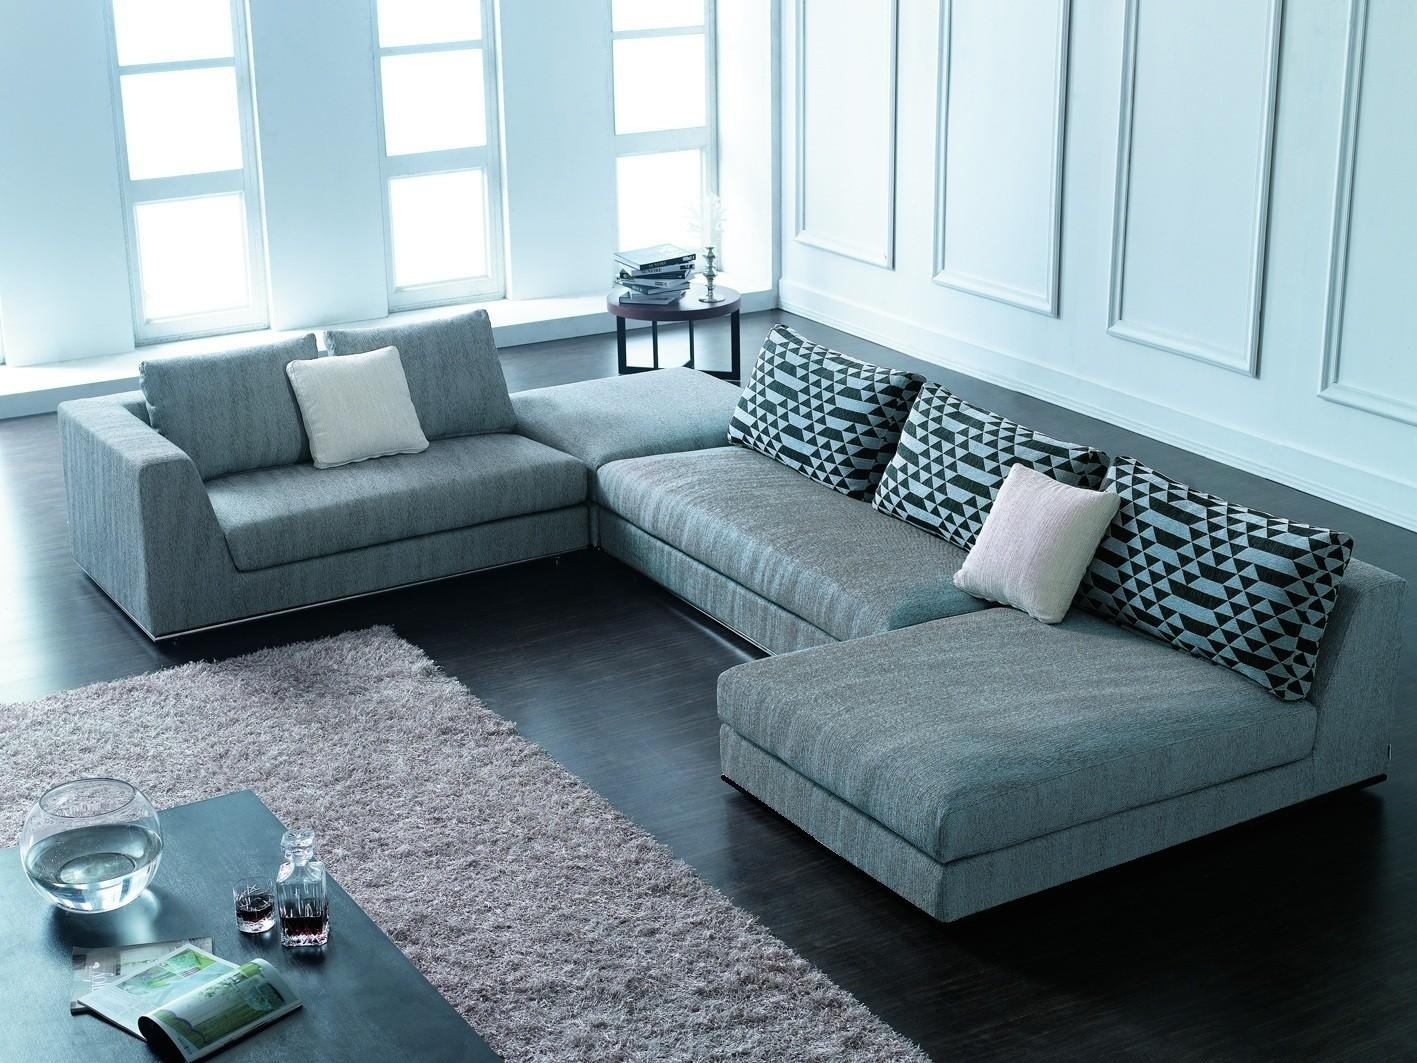 Sofas Center : Contemporary Sectional Sofa Small With Chaise Intended For Modern Sectional Sofas For Small Spaces (Image 19 of 20)